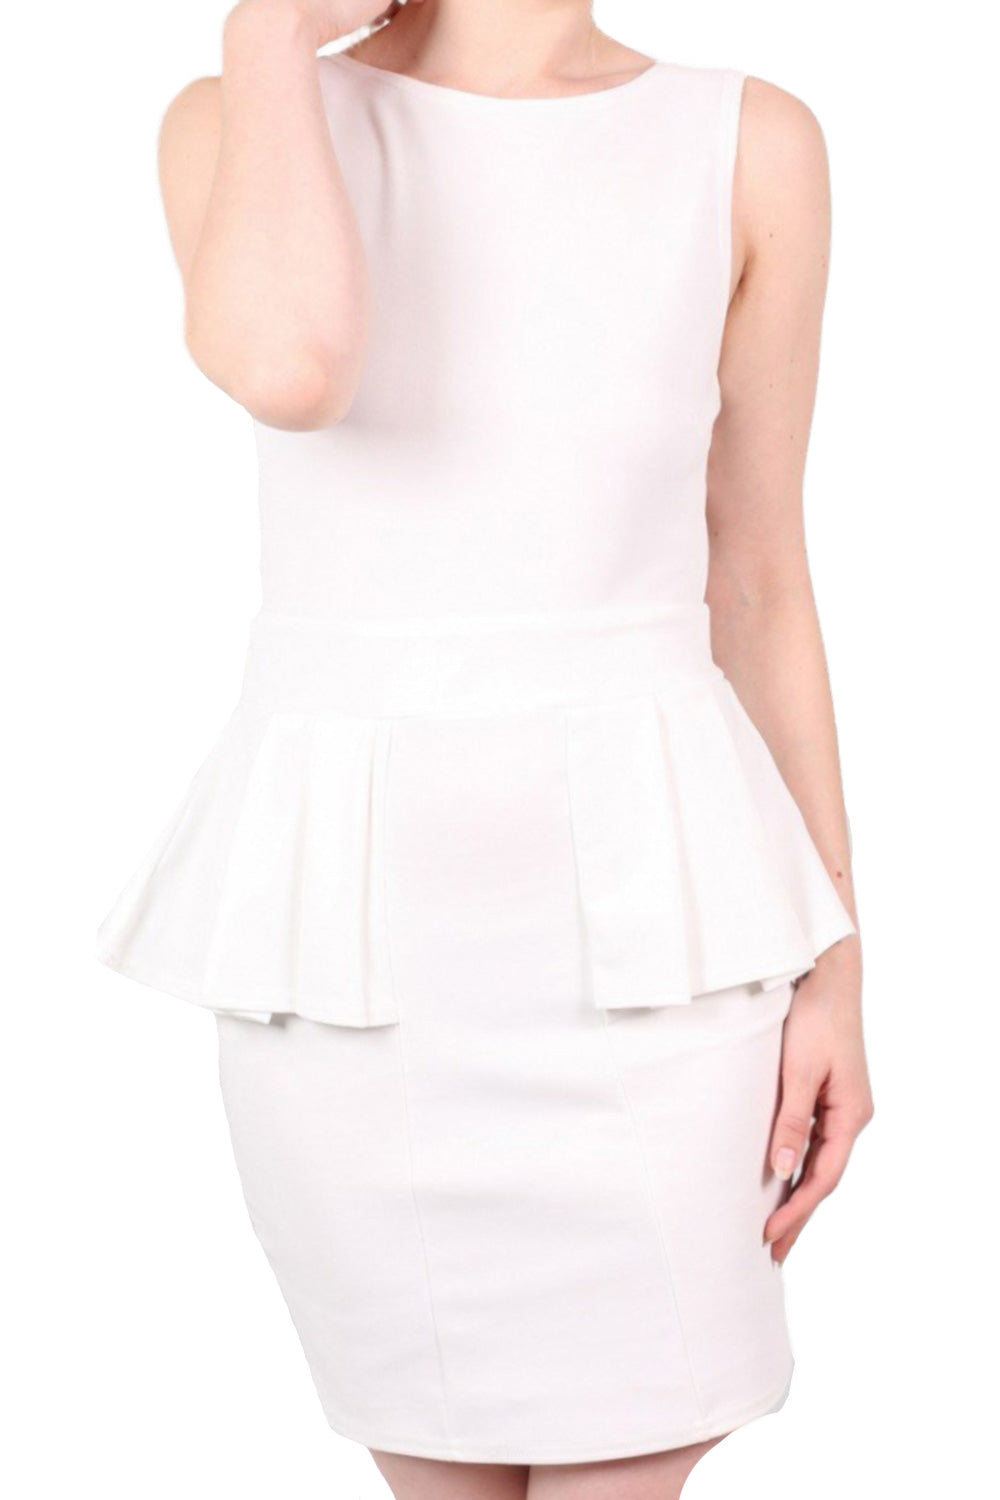 Low Back Peplum Dress in White